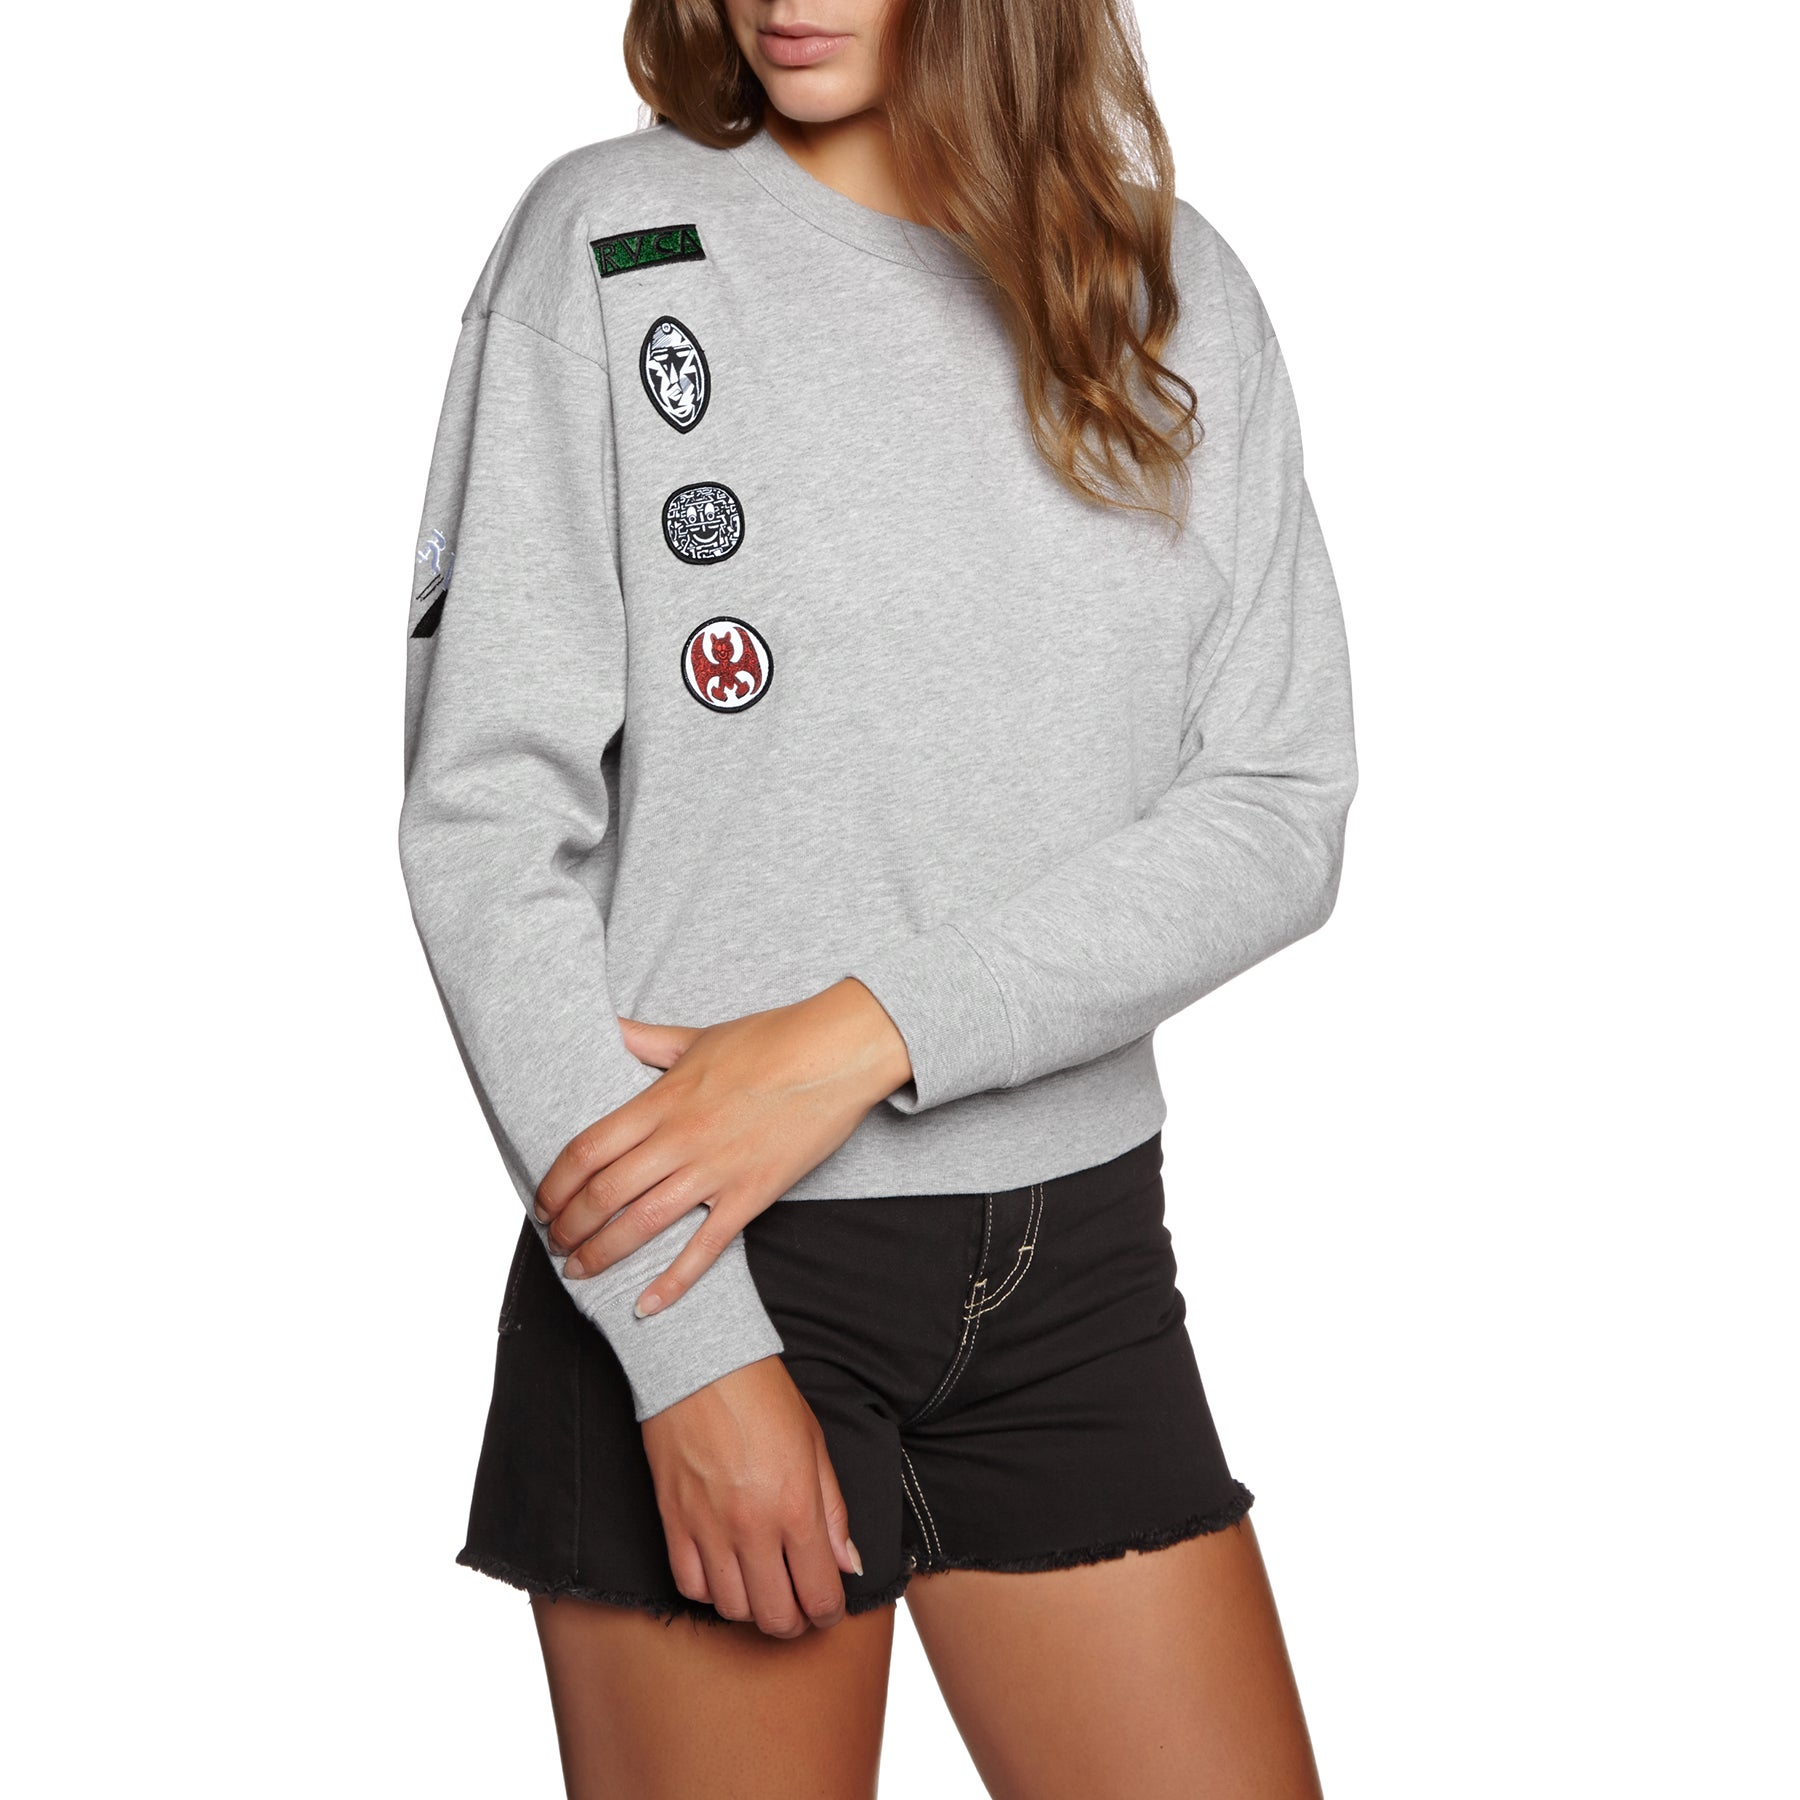 RVCA Grillo Patch Crew Ladies Sweater